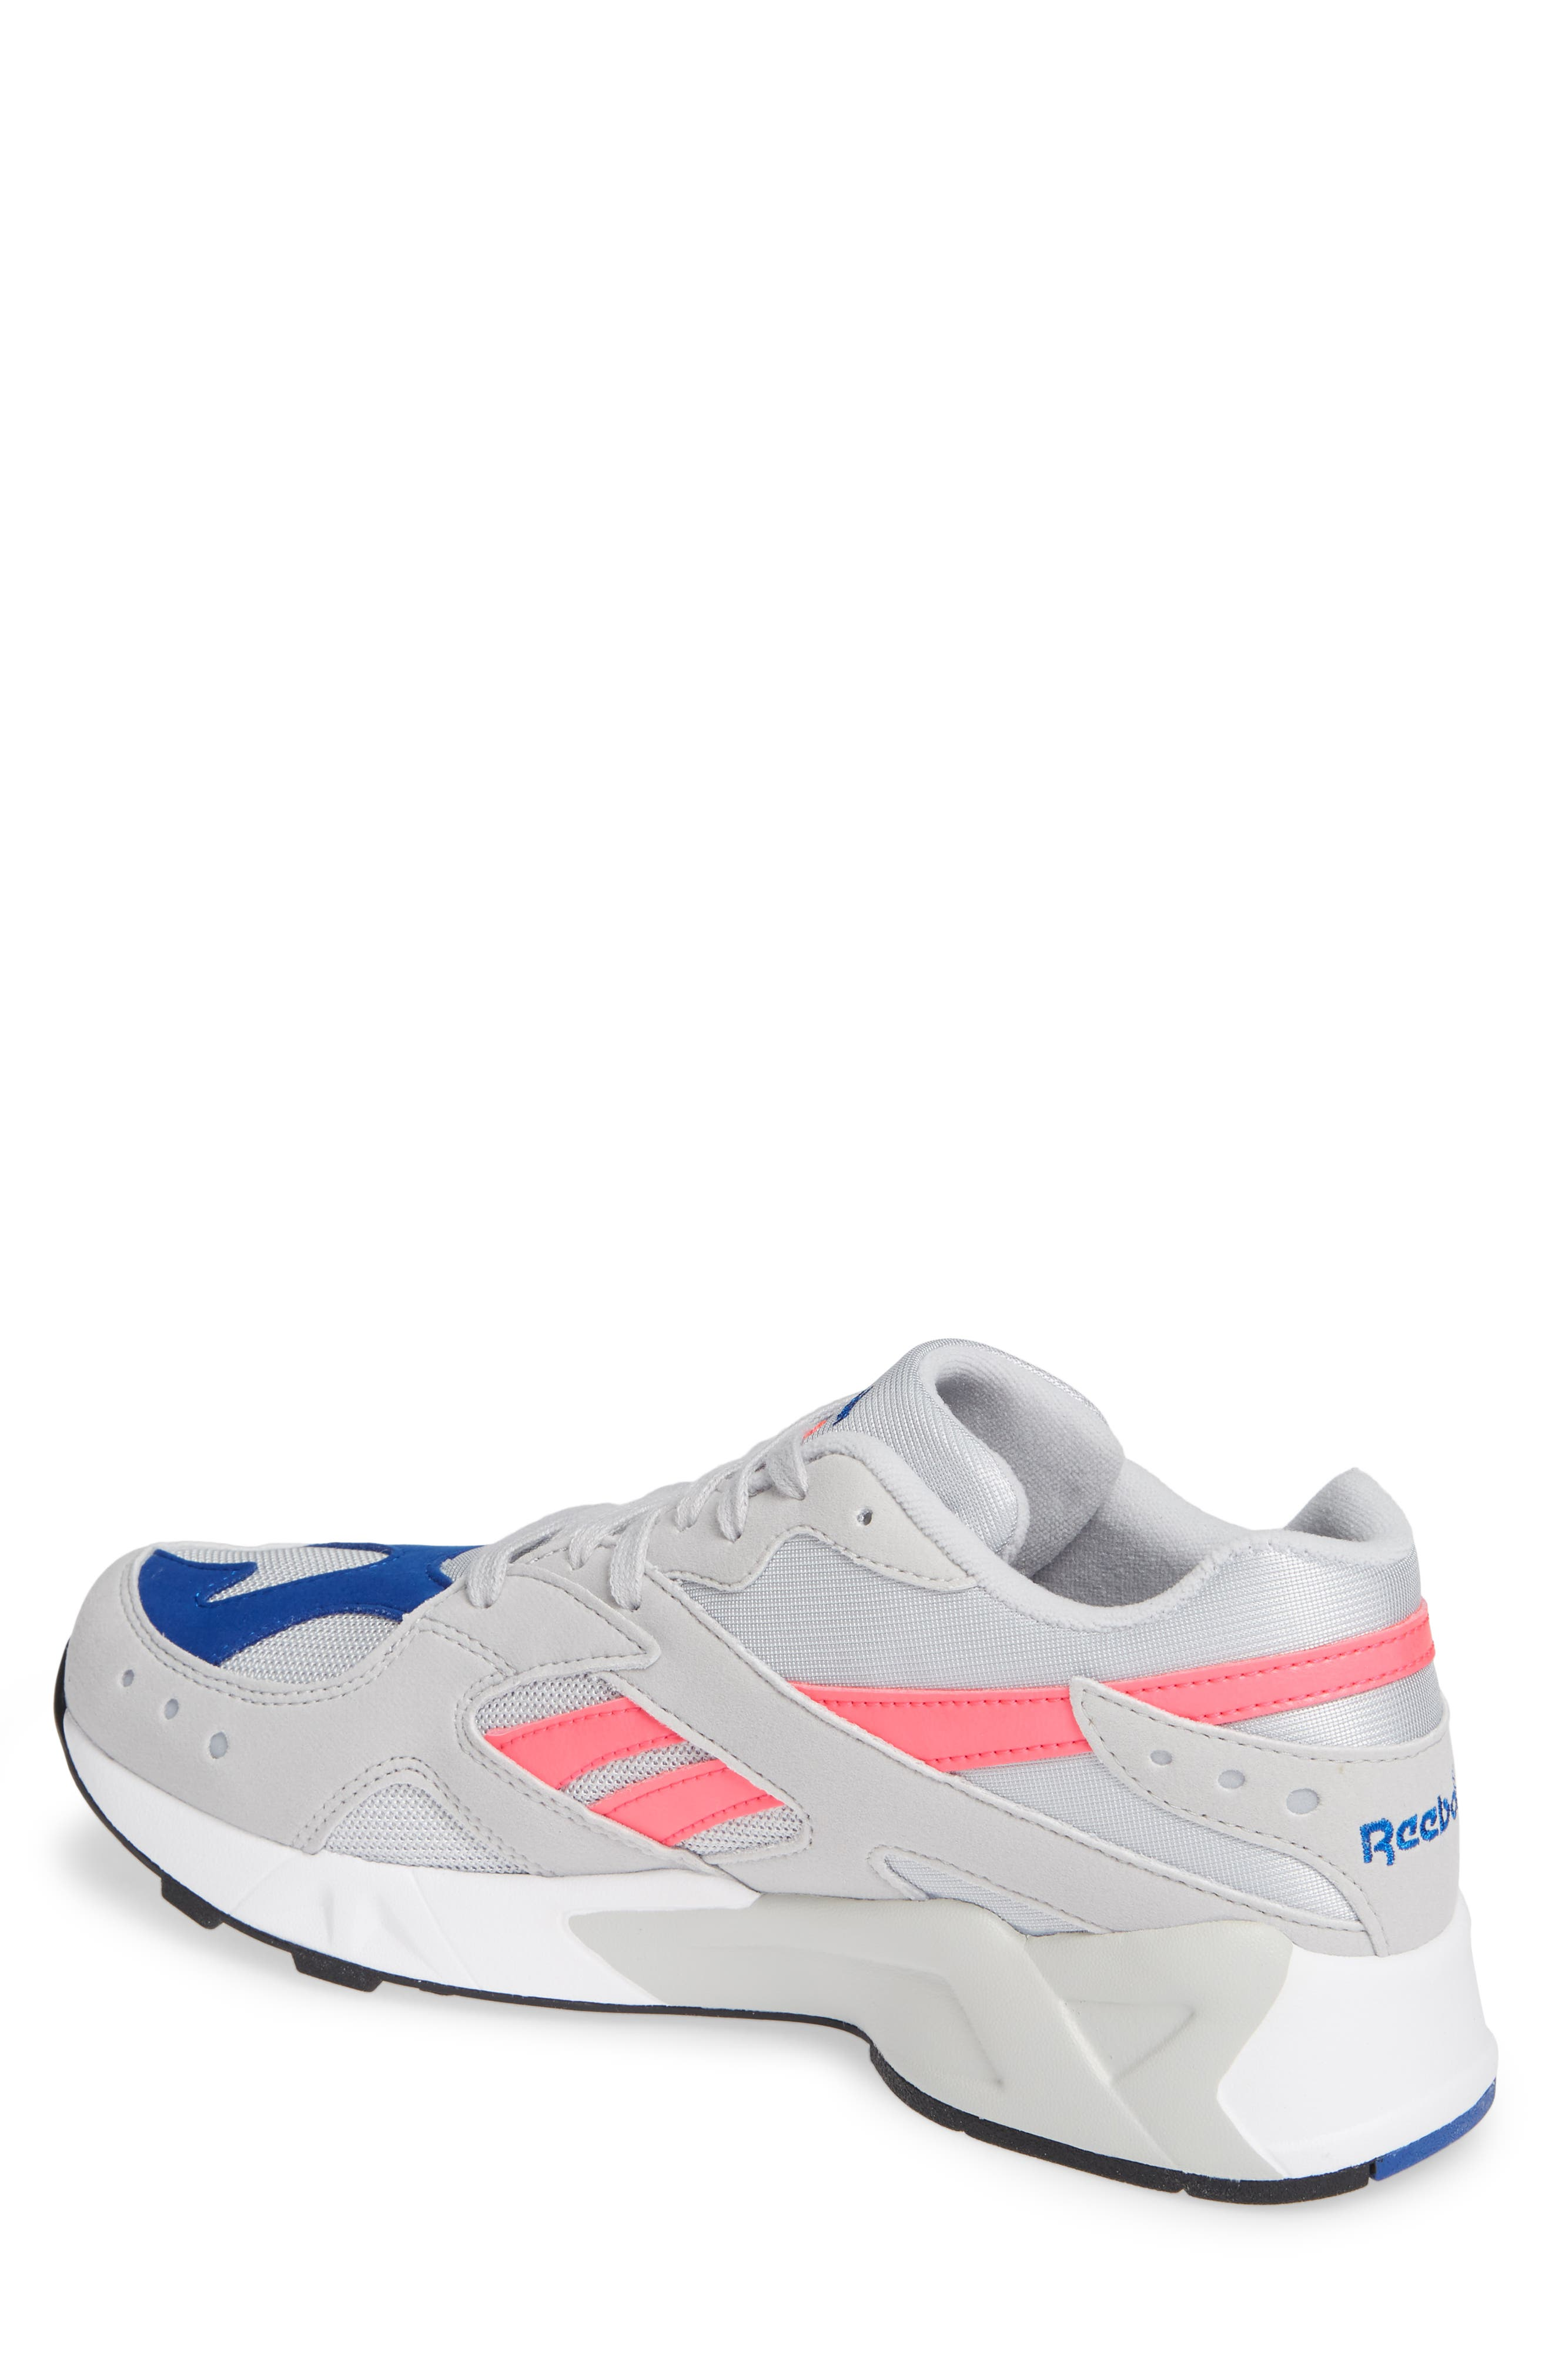 Aztrek Sneaker,                             Alternate thumbnail 2, color,                             GREY/ PINK/ COLLEGIATE ROYAL